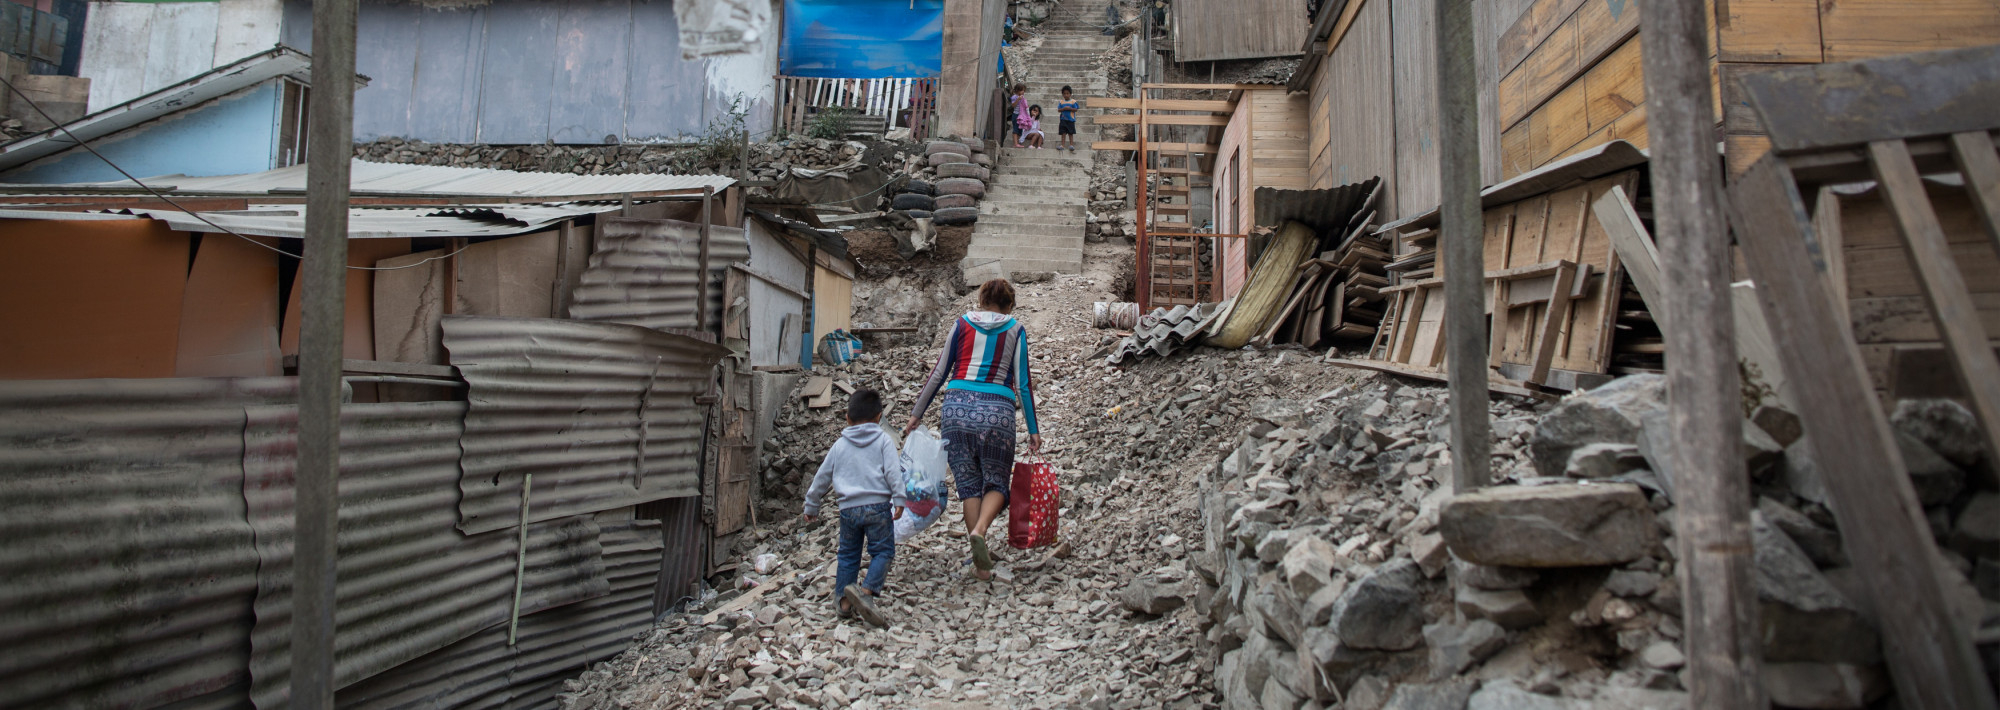 Woman and a child walking through an alleyway